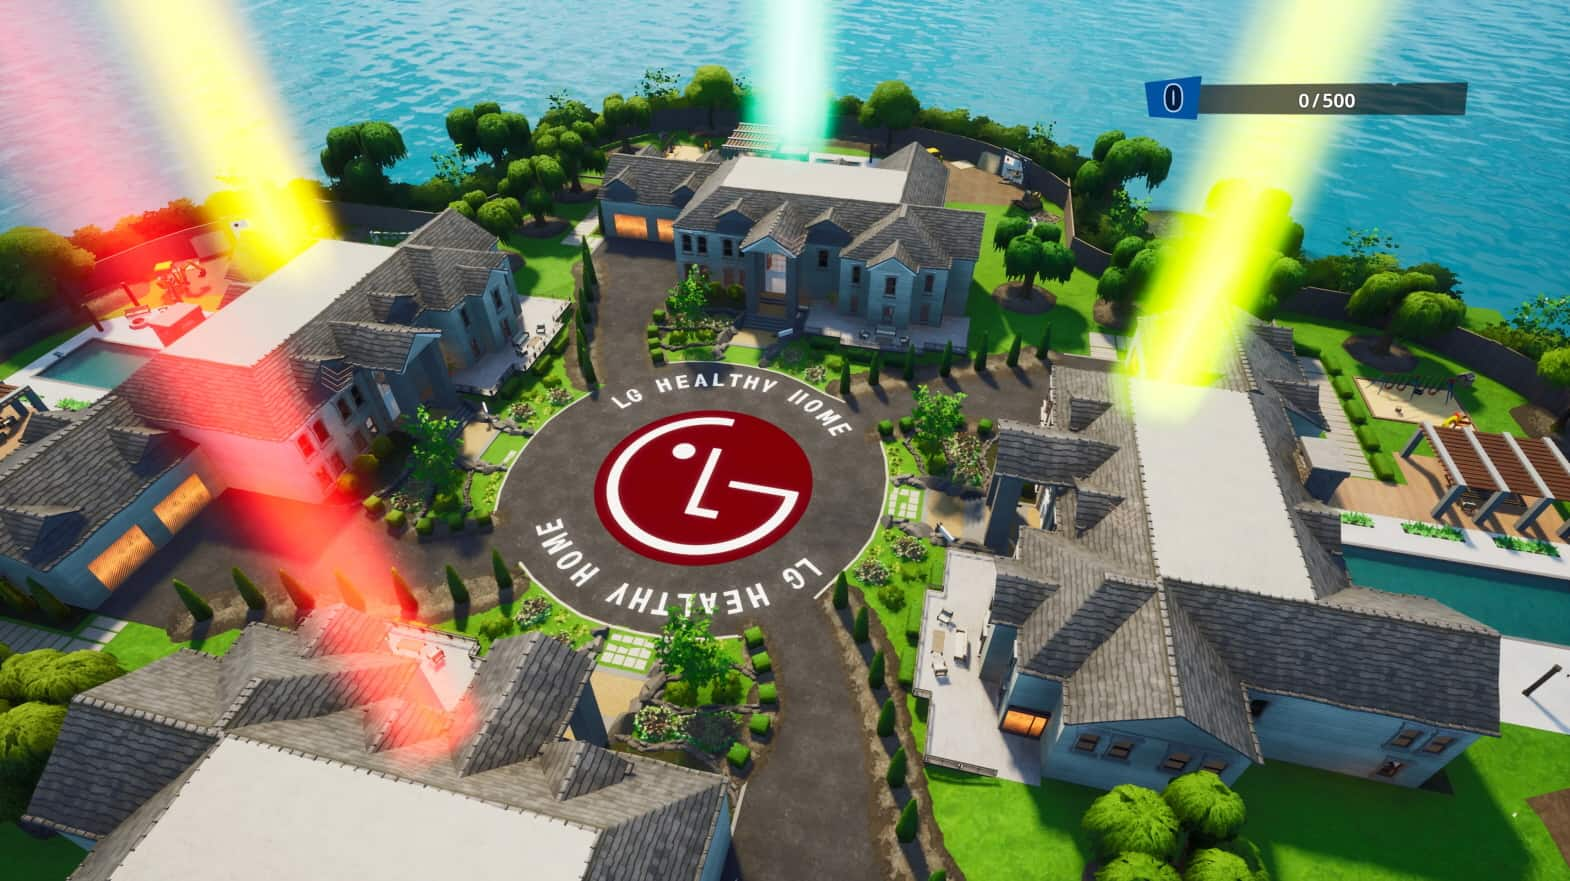 LG Brings Unique Experience To Virtual Realms For Good Cause